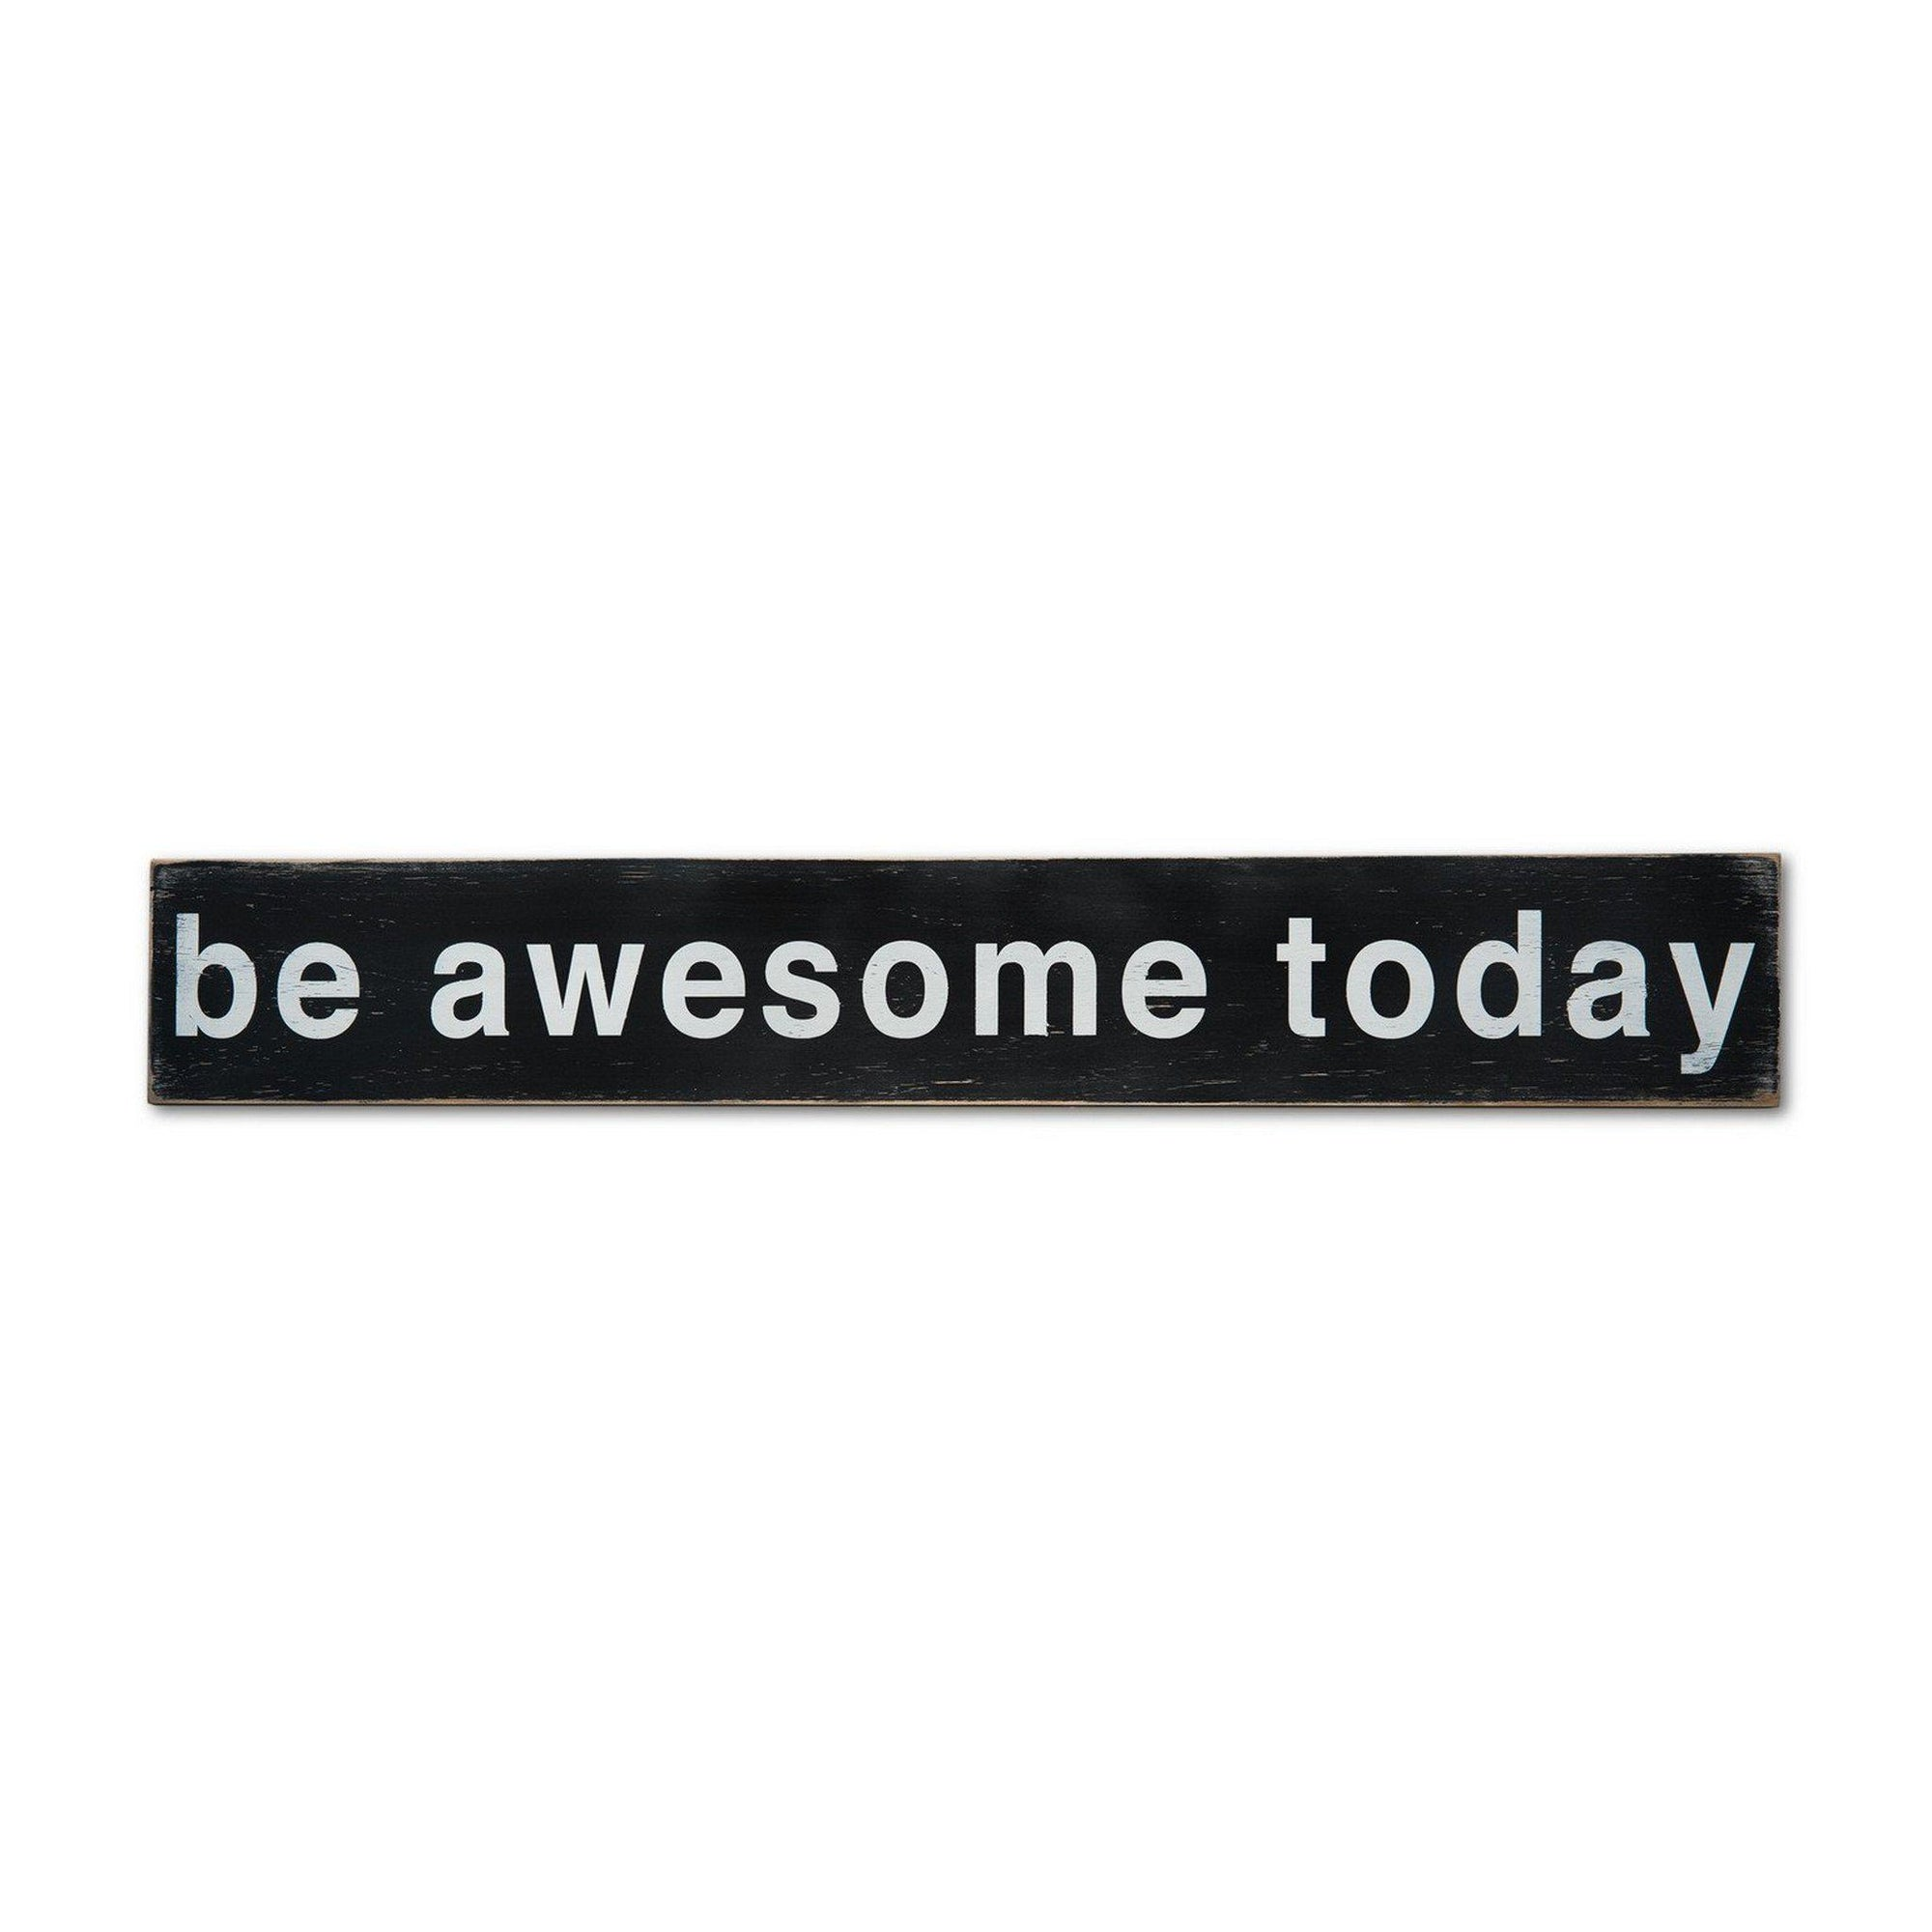 awesome sign decor be awesome today barn owl primitives  be awesome today barn owl primitives